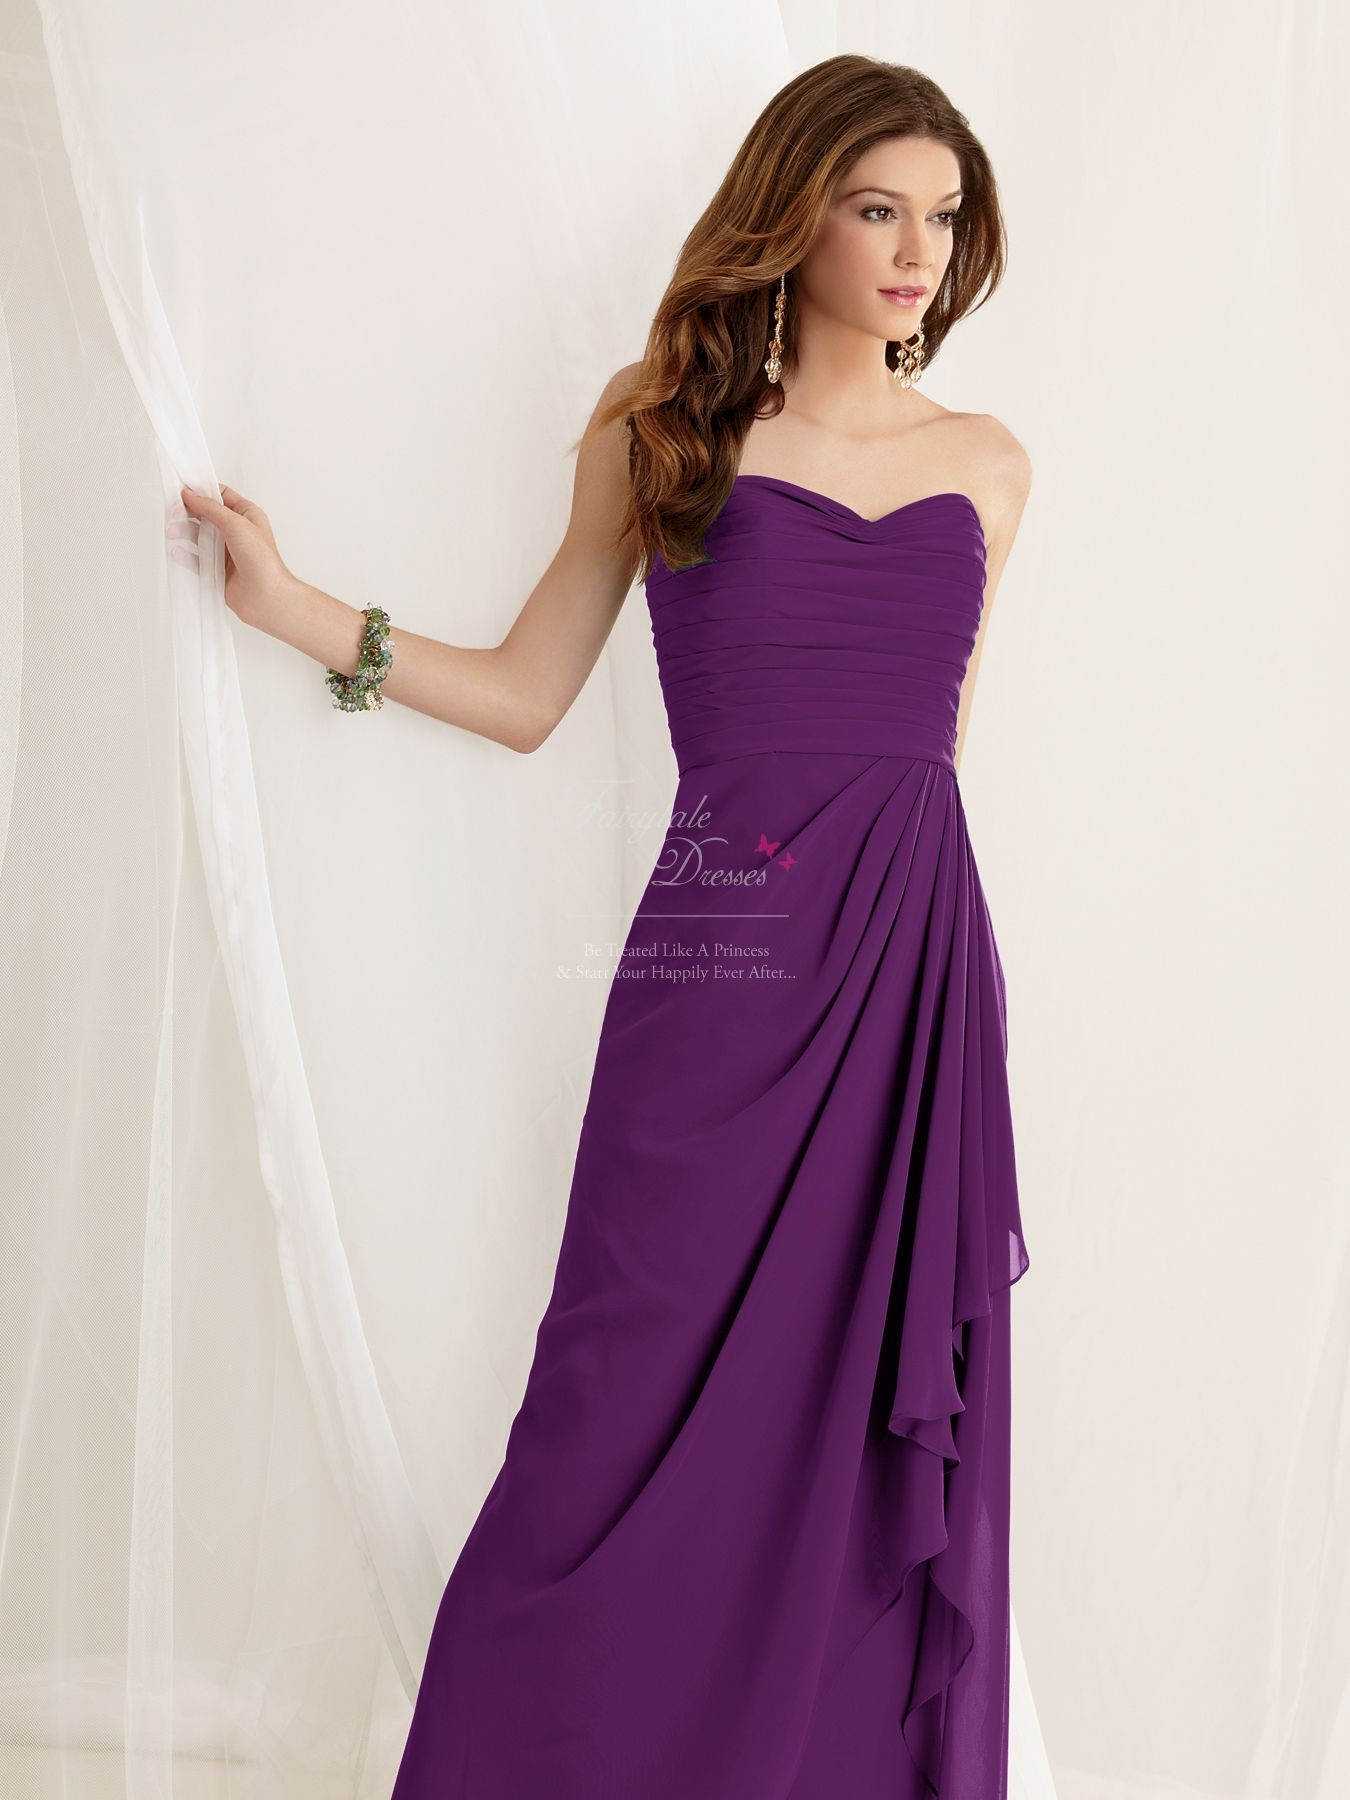 Dark Purple Bridesmaid Dresses 12024 | Purple Bridemaid Dresses UK ...